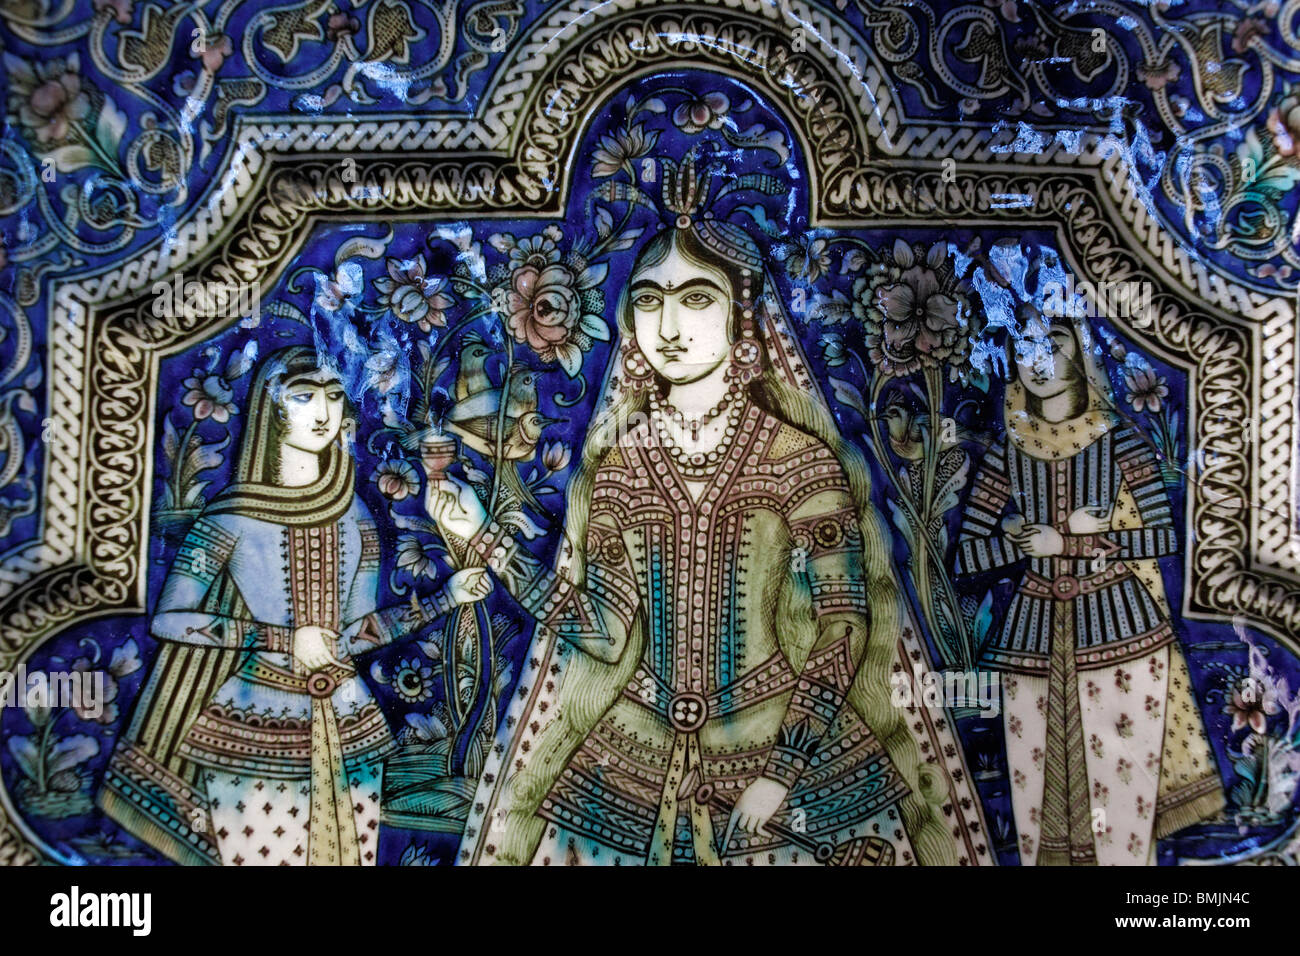 old iranian art museum brussels belgium stock photo 29915212 alamy